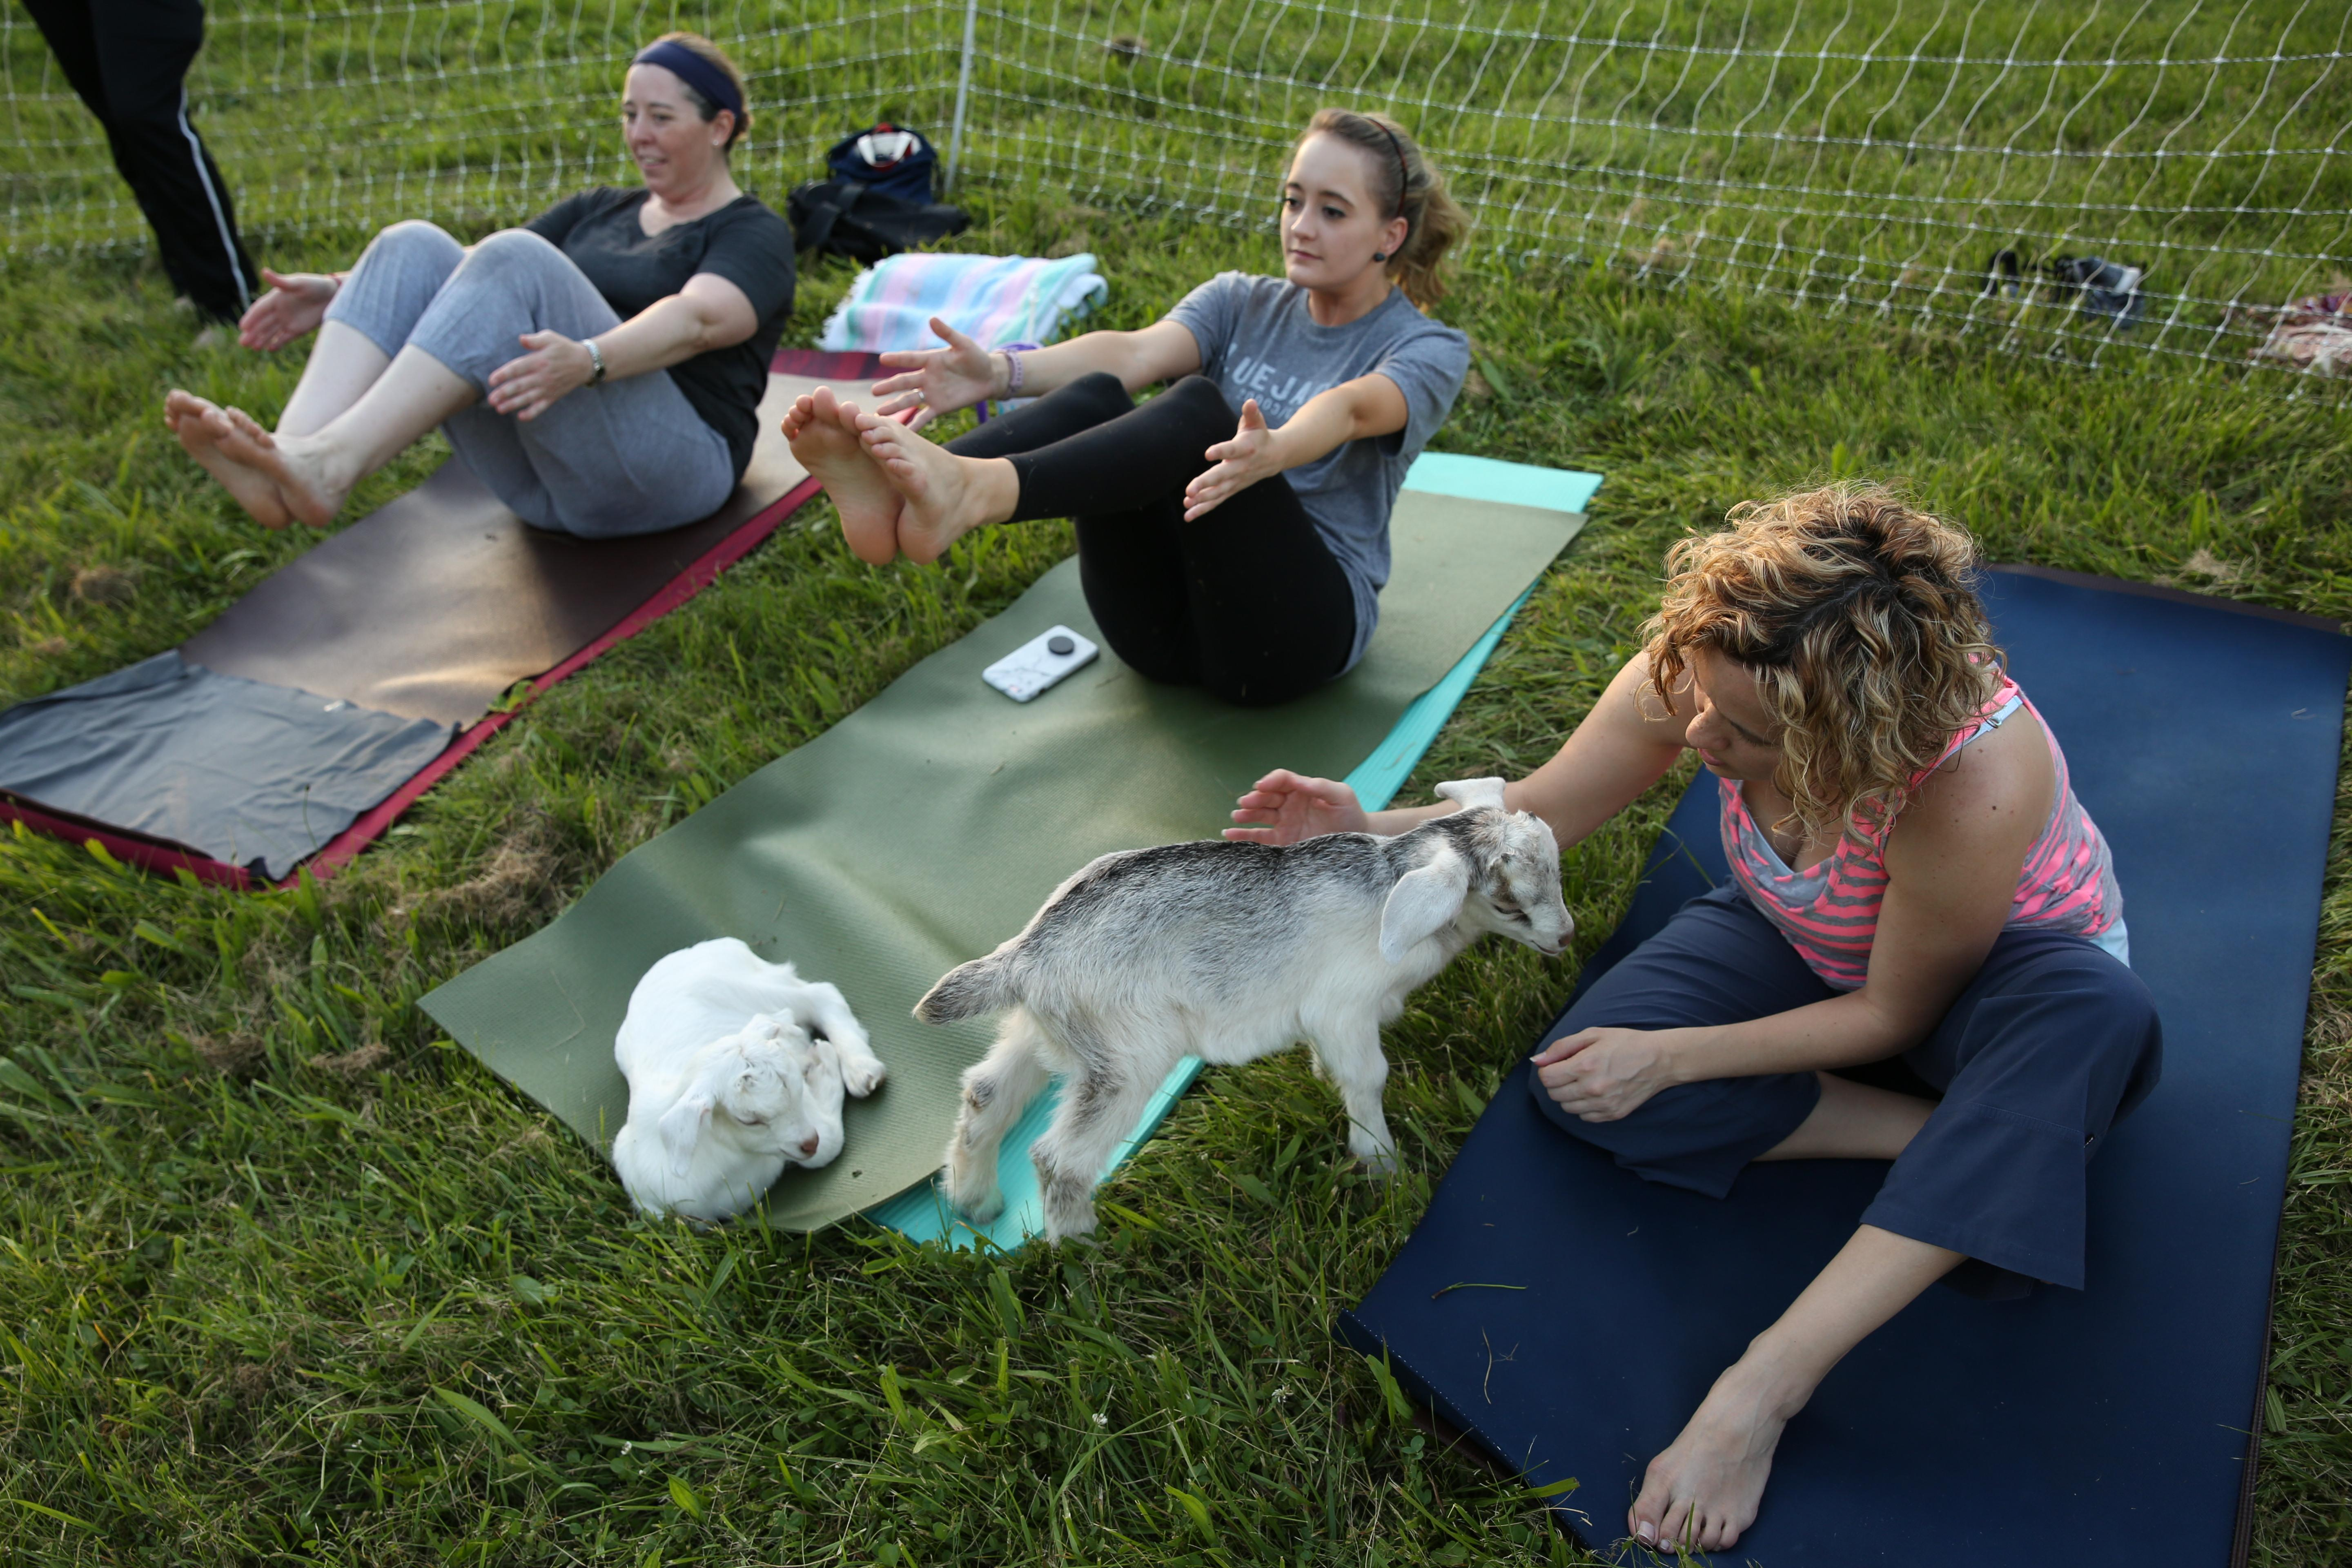 Howard County-based yoga instructor Janice Ingson is taking her practice to the farm. For about a month, Janice has been partnering with farms throughout the DMV for goat yoga, but the most recent class was held at Fairland Farm in Silver Spring.  Although many of the students found the goats, some of which were three days old, a little distracting, everyone was giggling by the end of it.   Janice says she'll be taking the class to farms throughout the mid-Atlantic, but you can keep an eye on the goat yoga schedule on Instagram, @maryland_goat_yoga.  (Amanda Andrade-Rhoades/DC Refined)